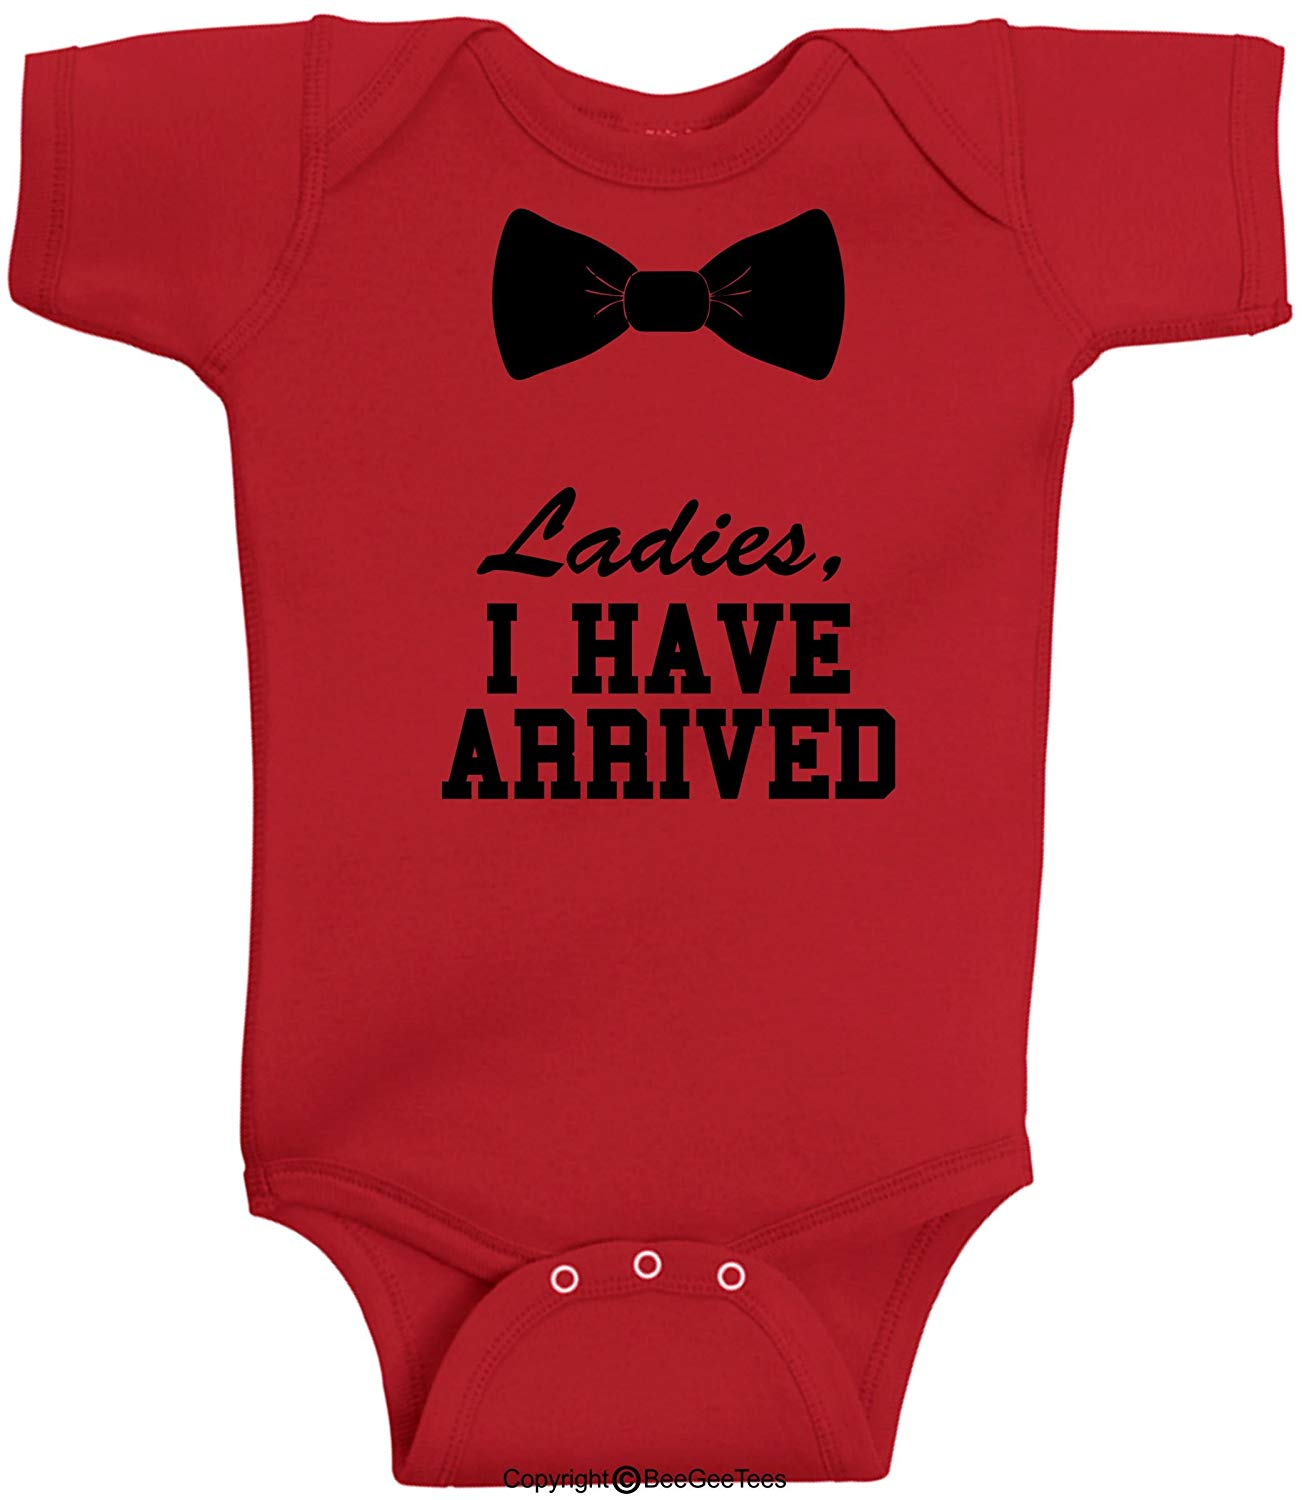 Ladies I Have Arrived Dressy Funny Baby Bodysuit Romper Hipster Gift by BeeGeeTees